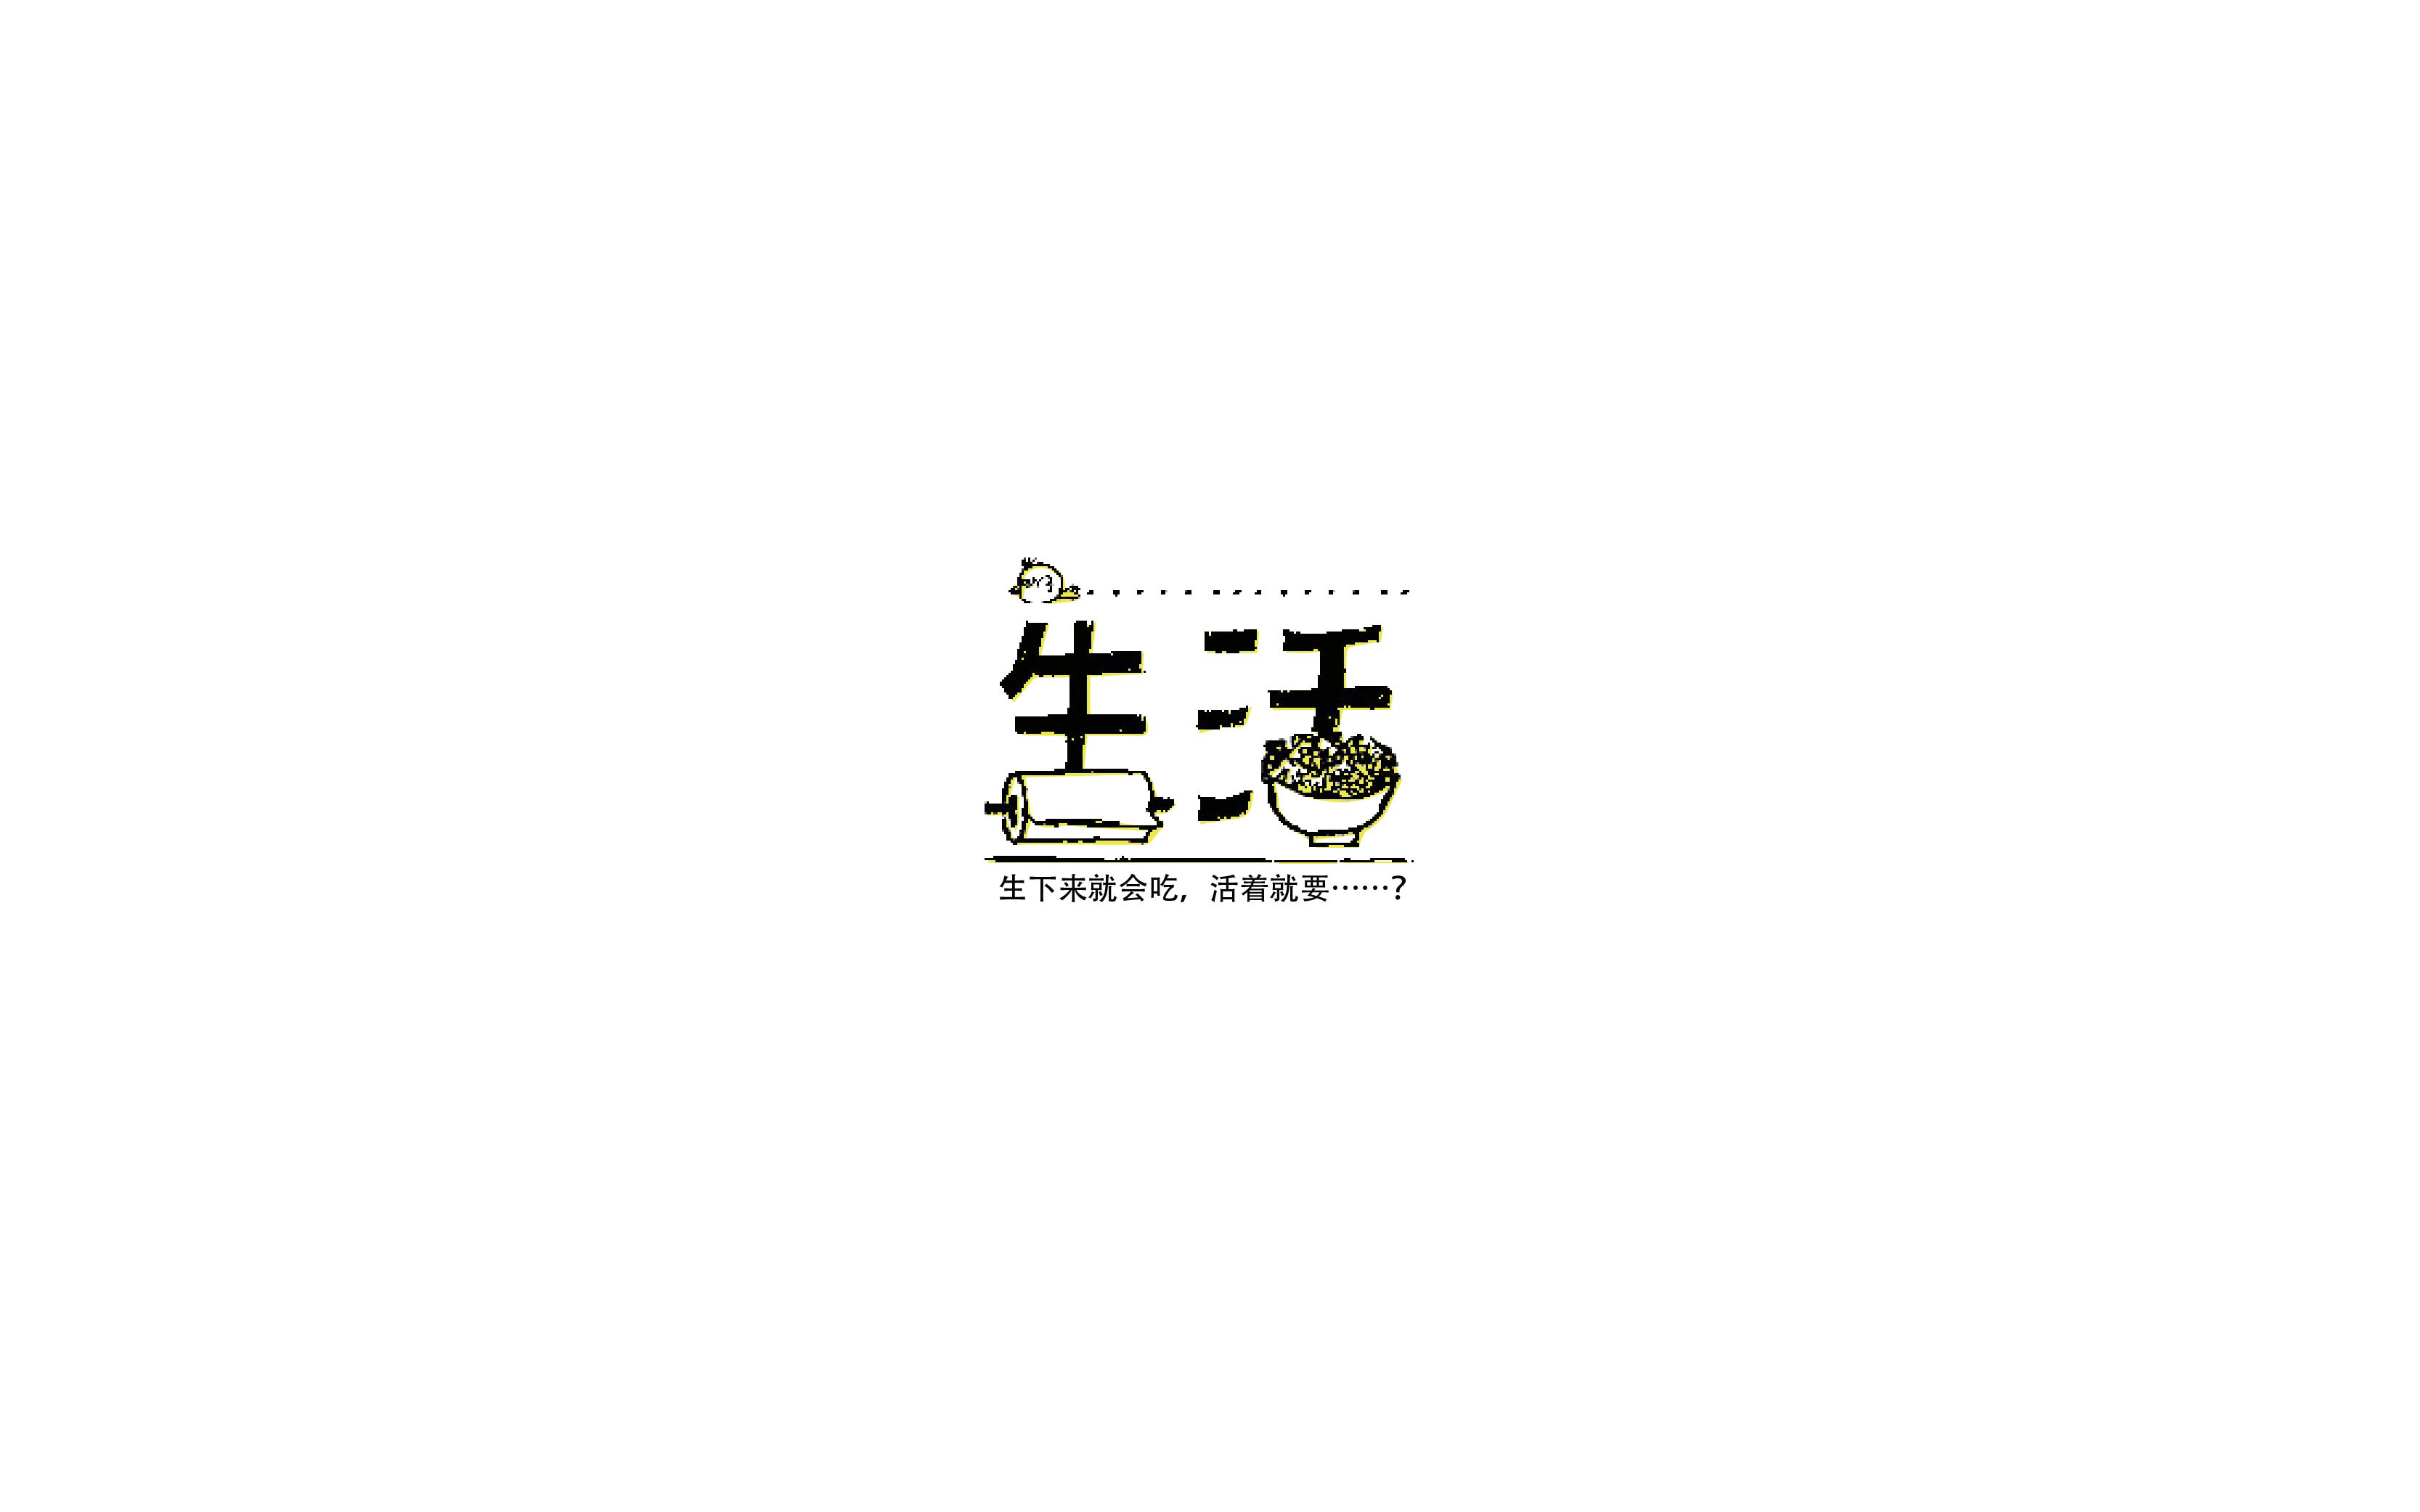 chinesefontdesign.com 2017 06 25 13 05 22 645465 17P Normal Chinese font design exercises